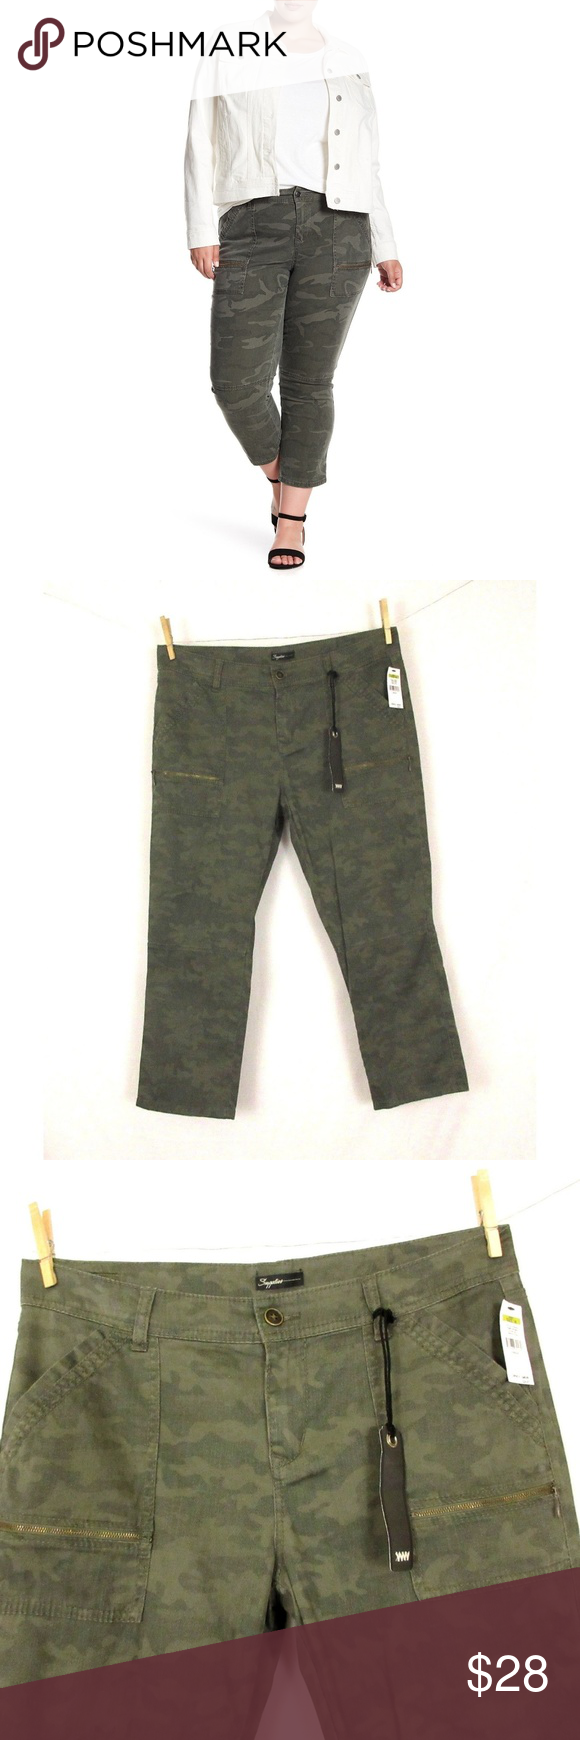 68b919f6a8a16 NEW Supplies by Union Bay 'Norma' Camo Crop Pants Cute pair of pants from